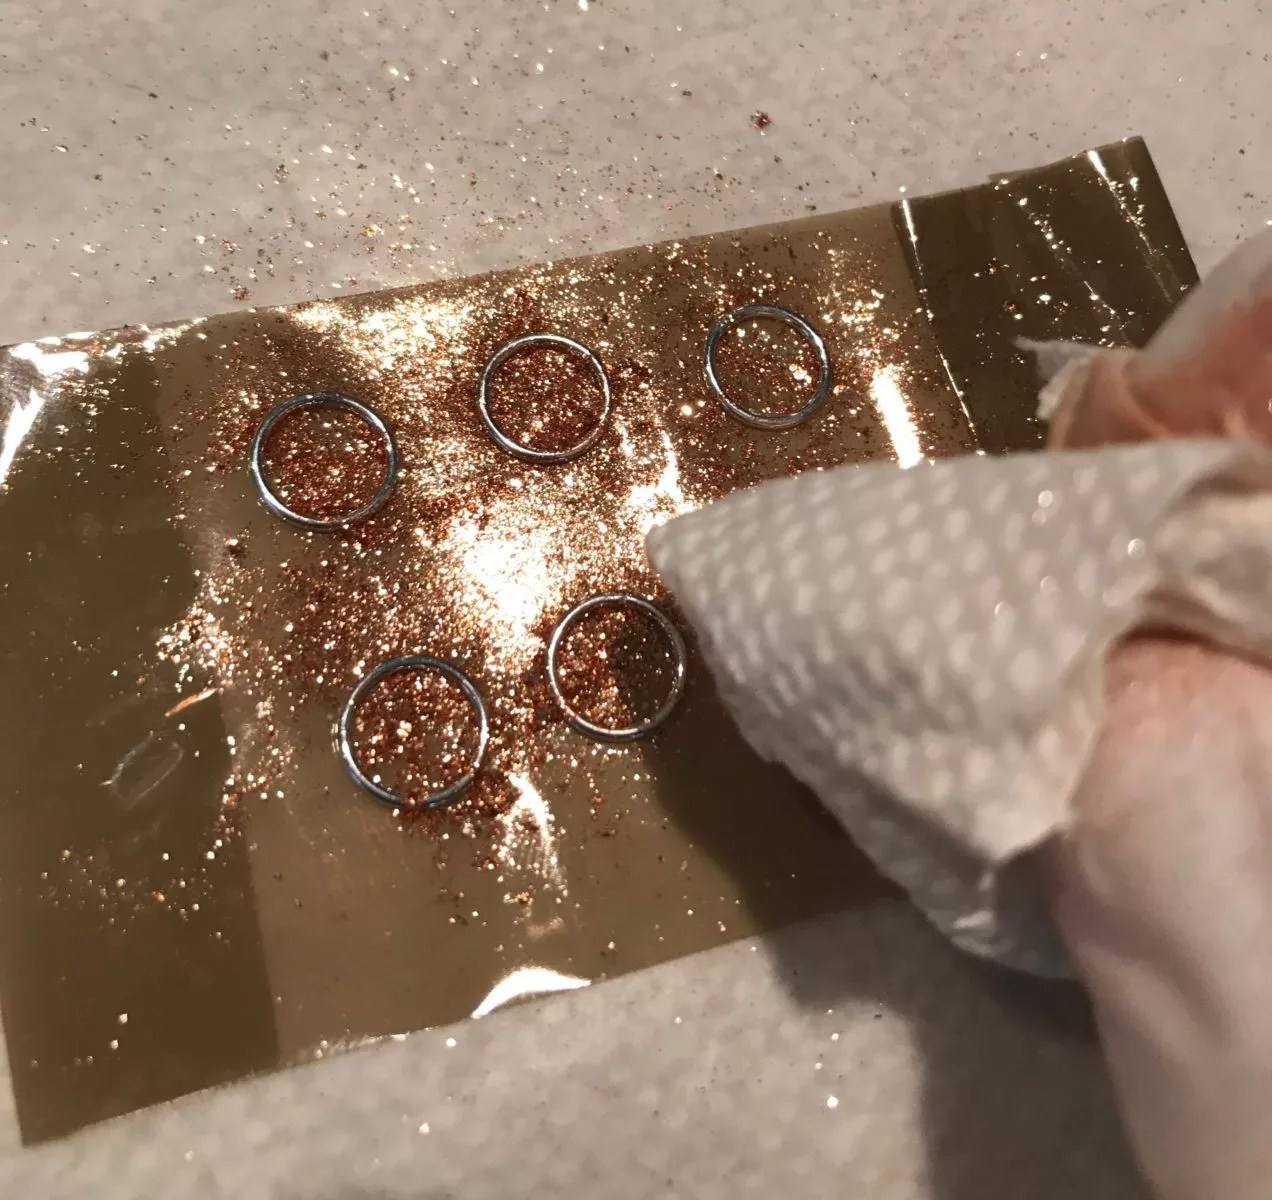 wiping excess powder